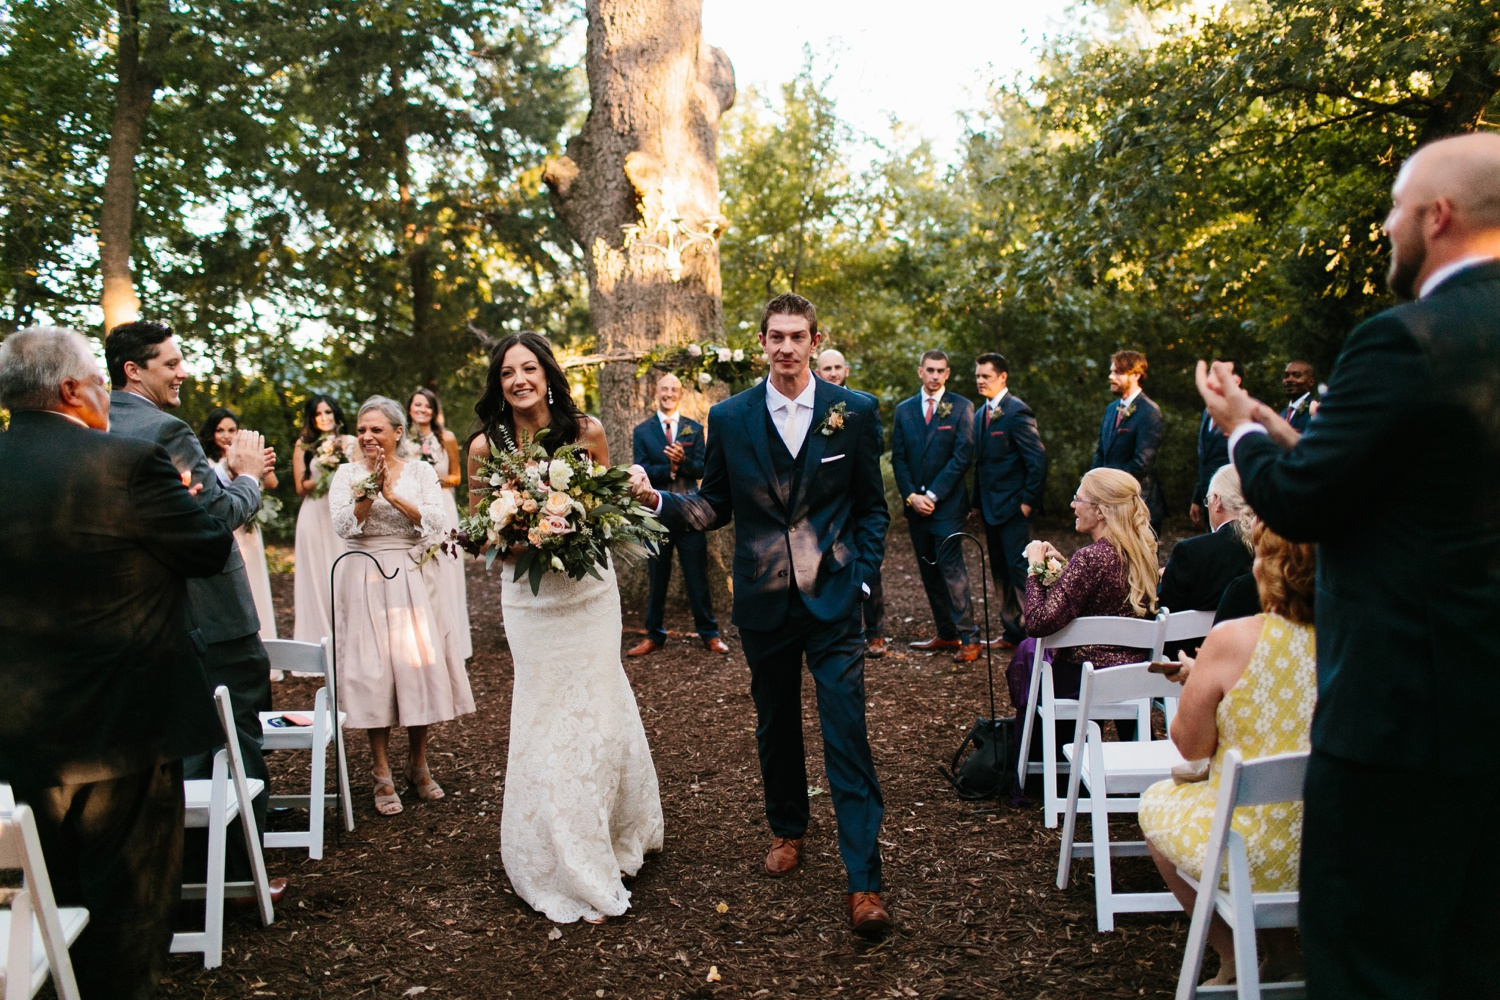 Erica + Henry | a bohemian inspired wedding at Chandlers Gardens in Salina, TX by North Texas Wedding Photographer Rachel Meagan Photography 095